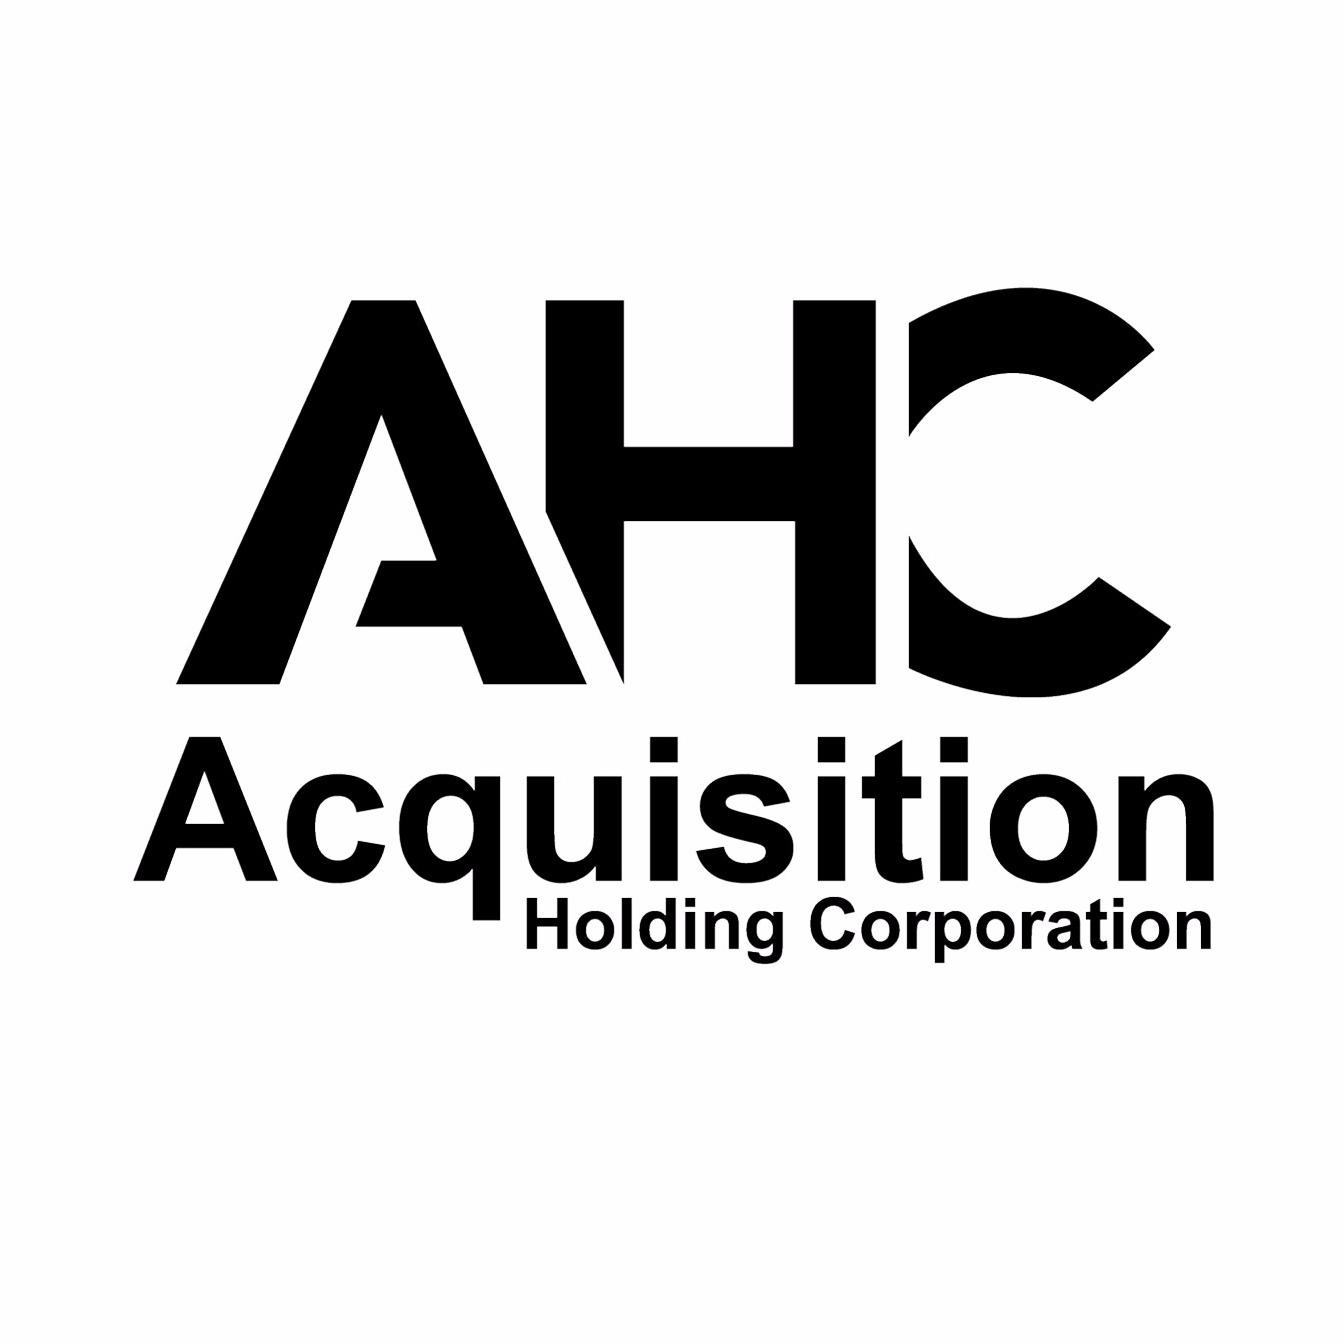 Acquisition Holding Corporation